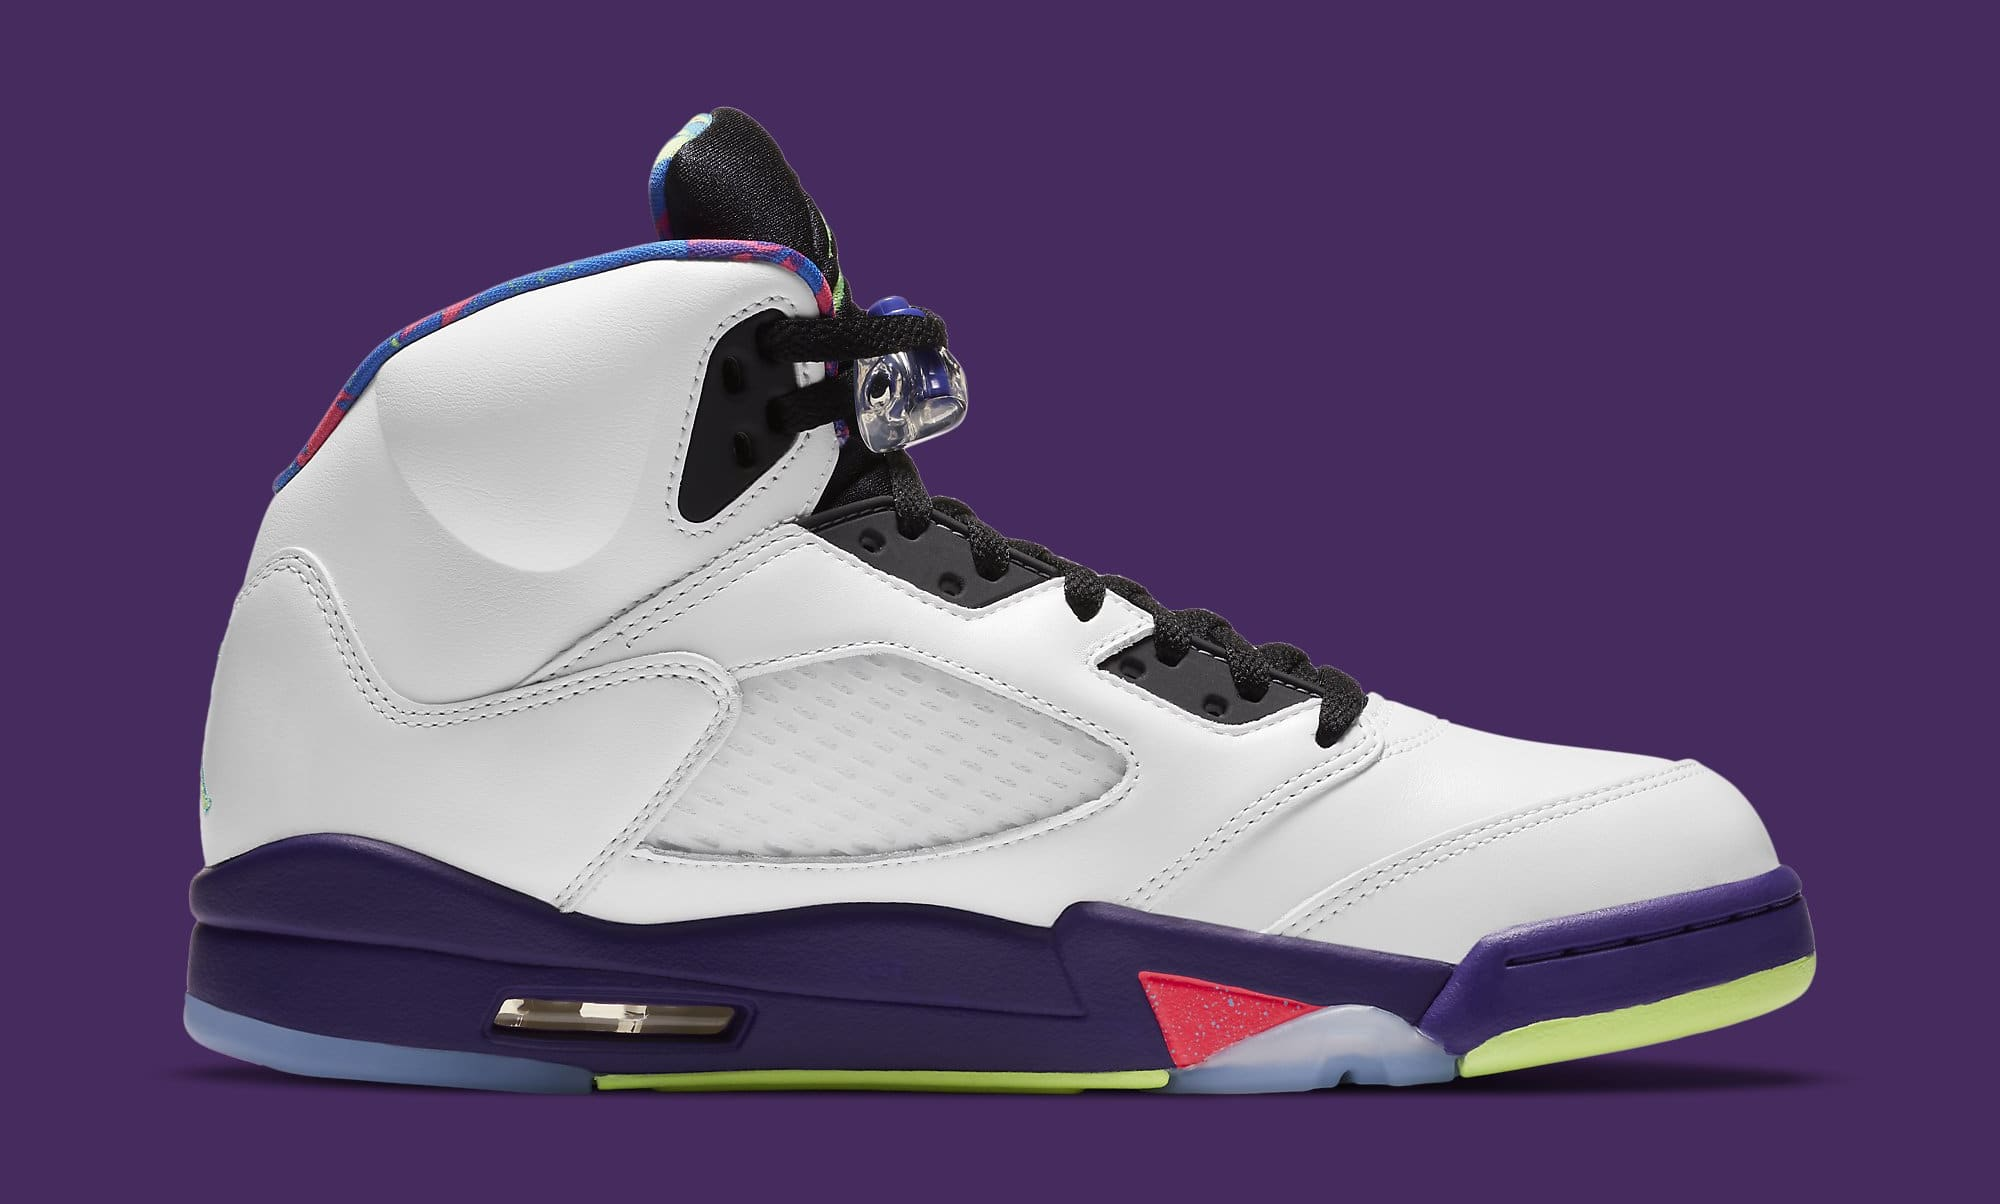 Air Jordan 5 Retro 'Ghost Green' DB3335-100 Medial